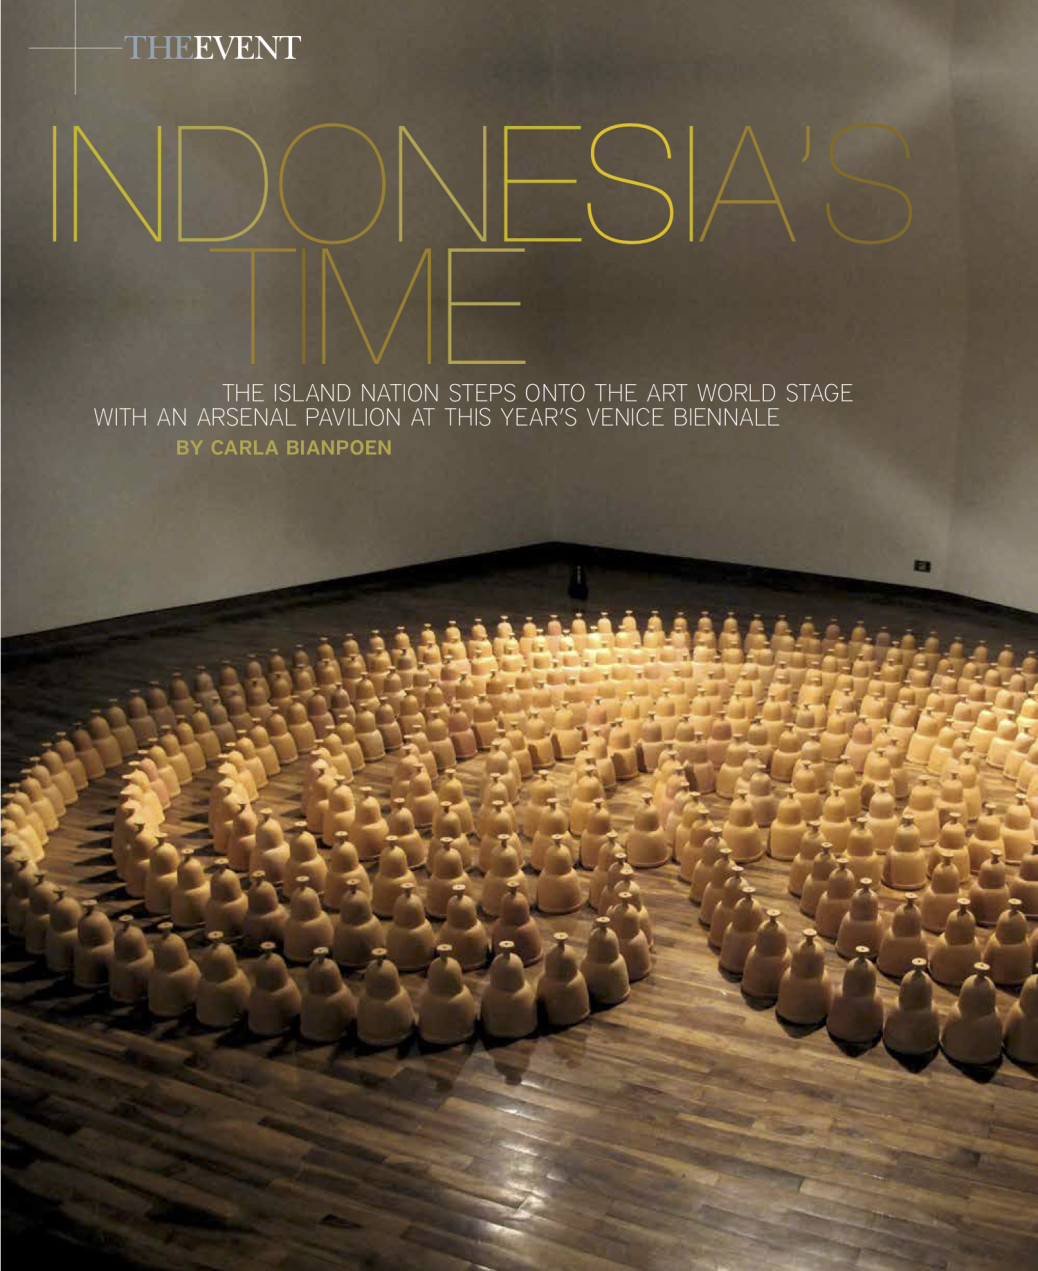 201301 | Indonesia's Time | Blouin Artinfo